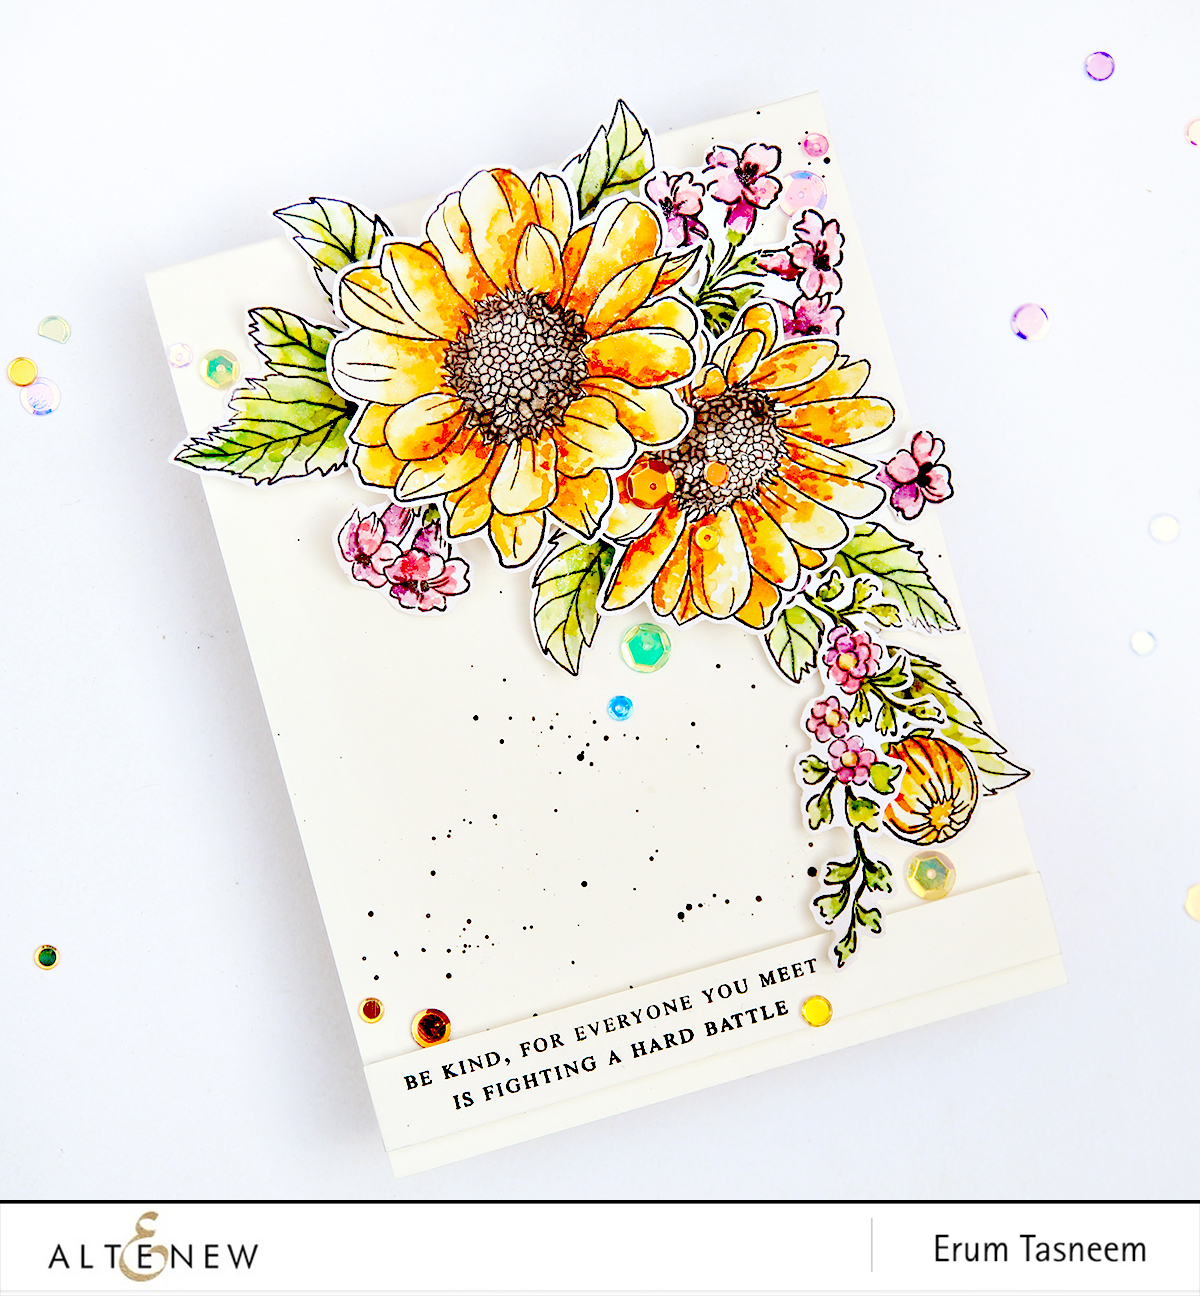 Spring daisy archives altenew blog altenew spring daisy beautiful day sentiments and quotes stamp sets erum tasneem izmirmasajfo